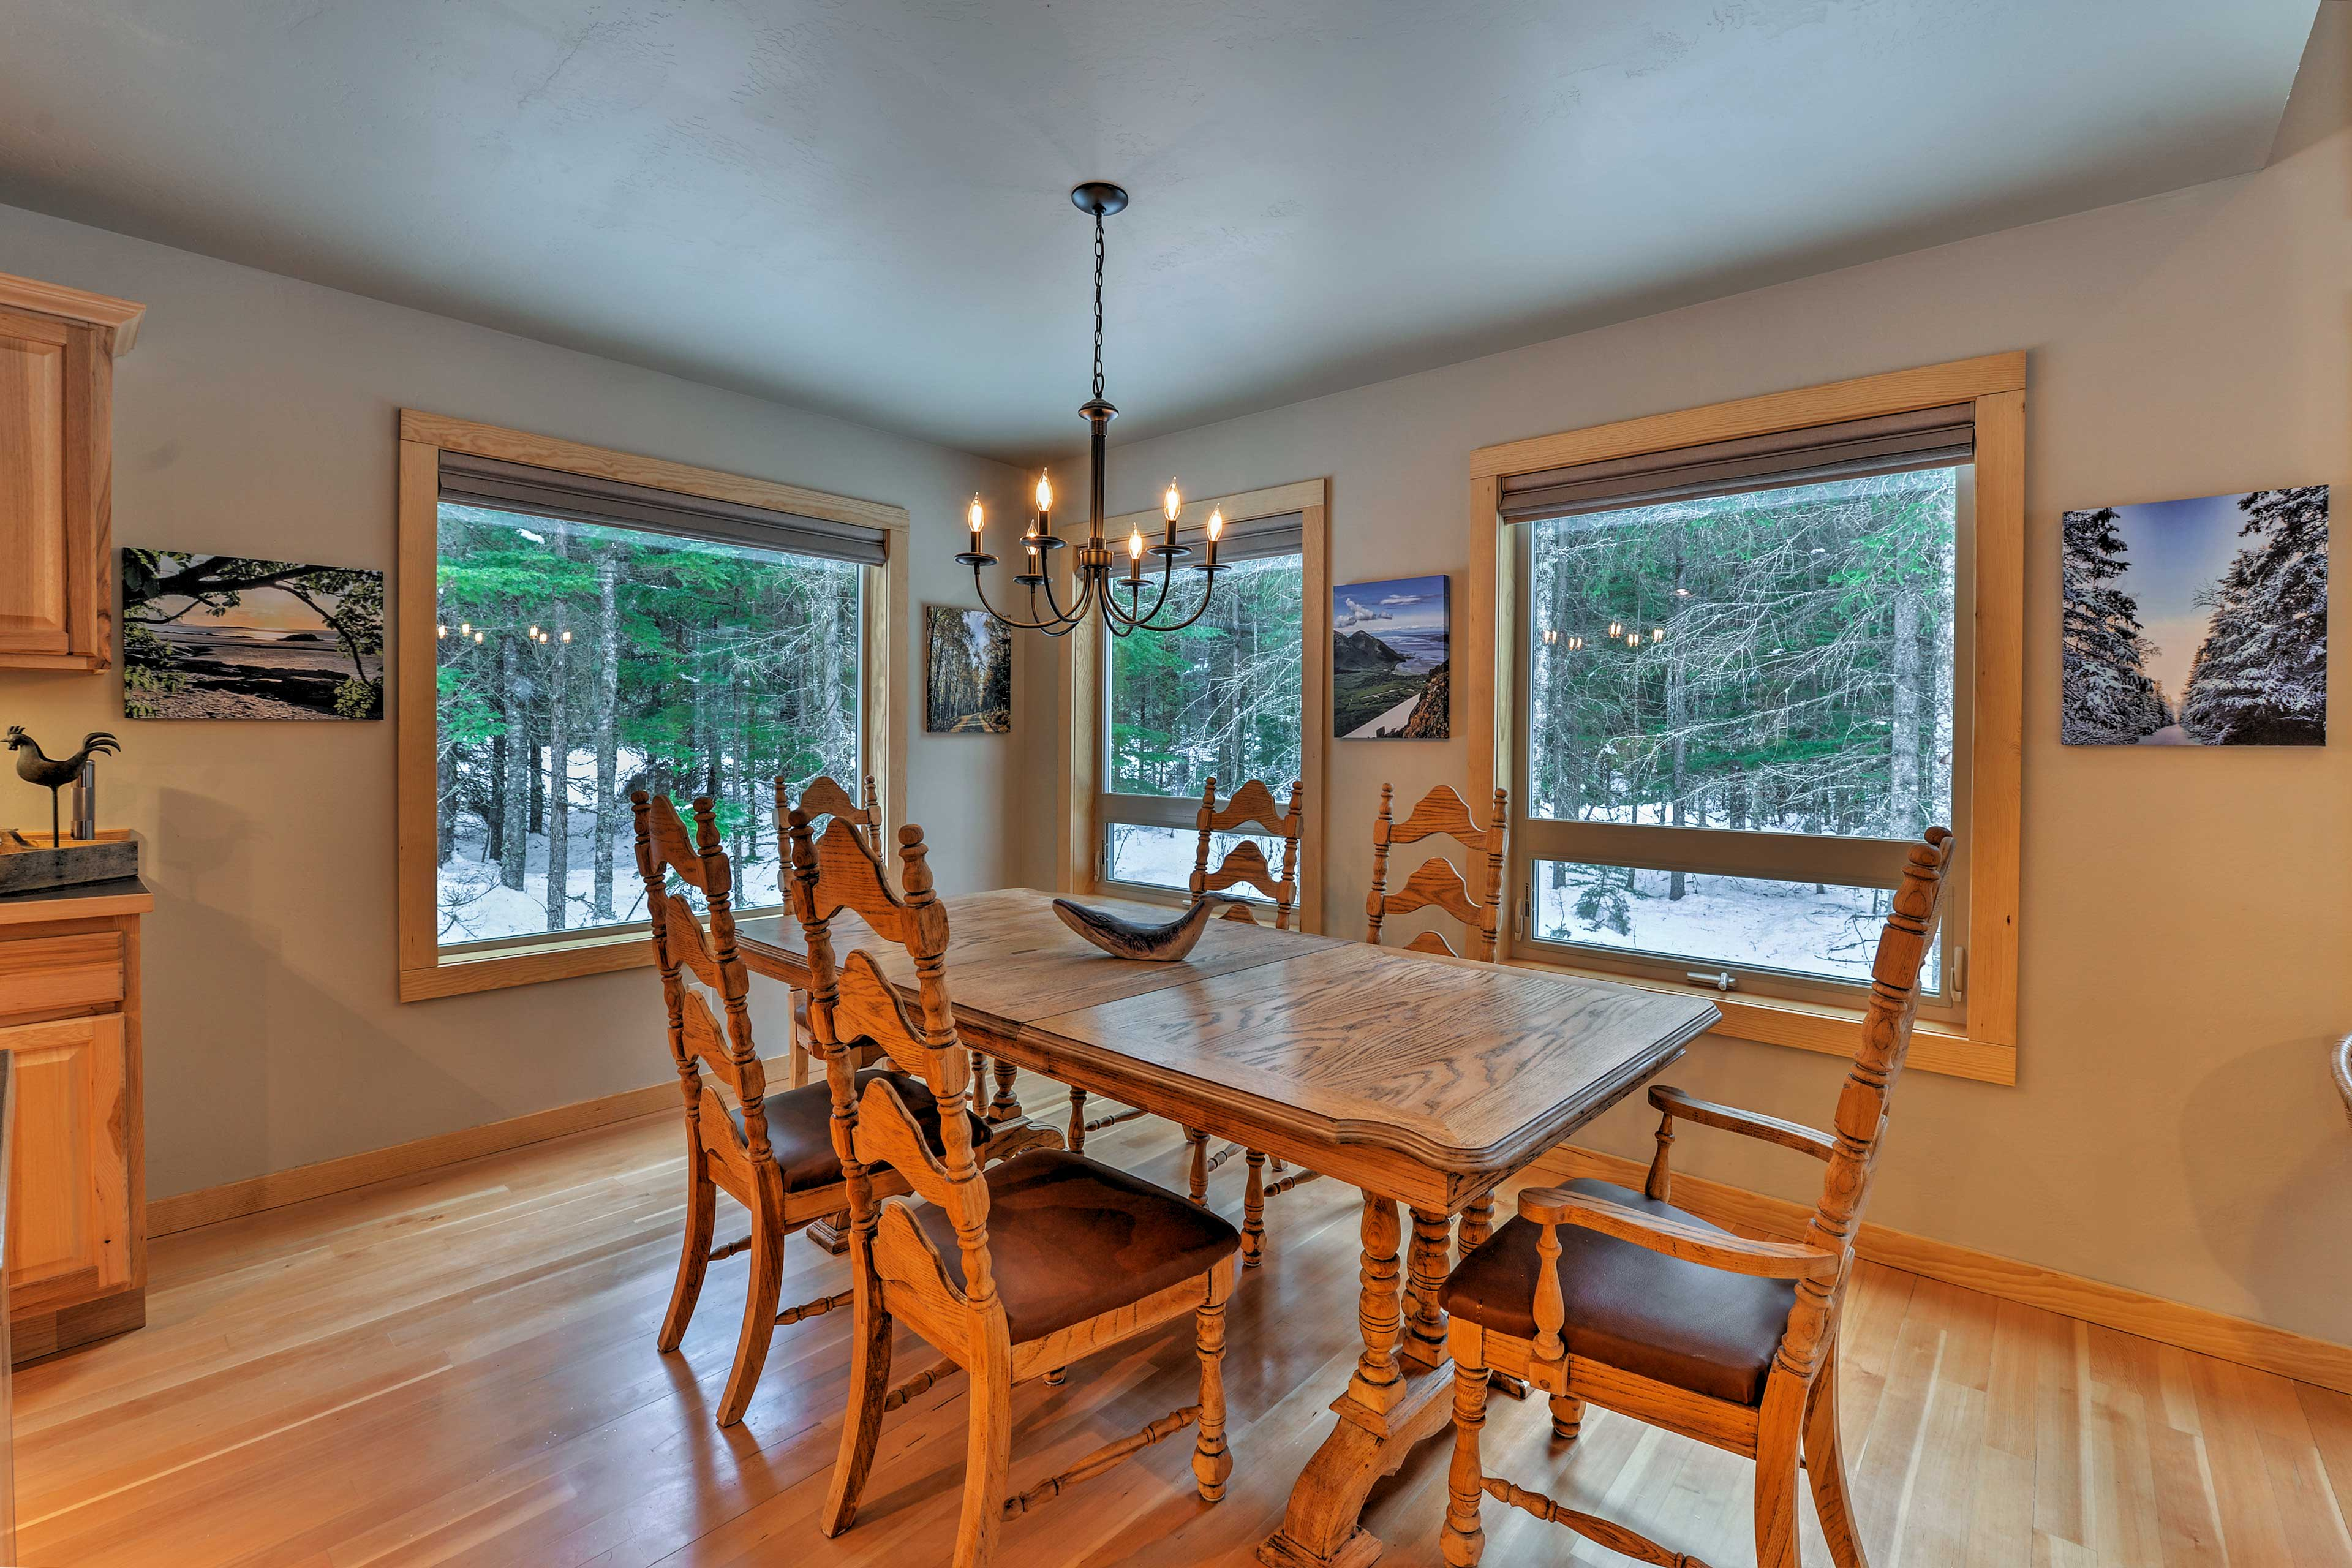 Enjoy dinner with a forest view at this dining table surrounded by windows.